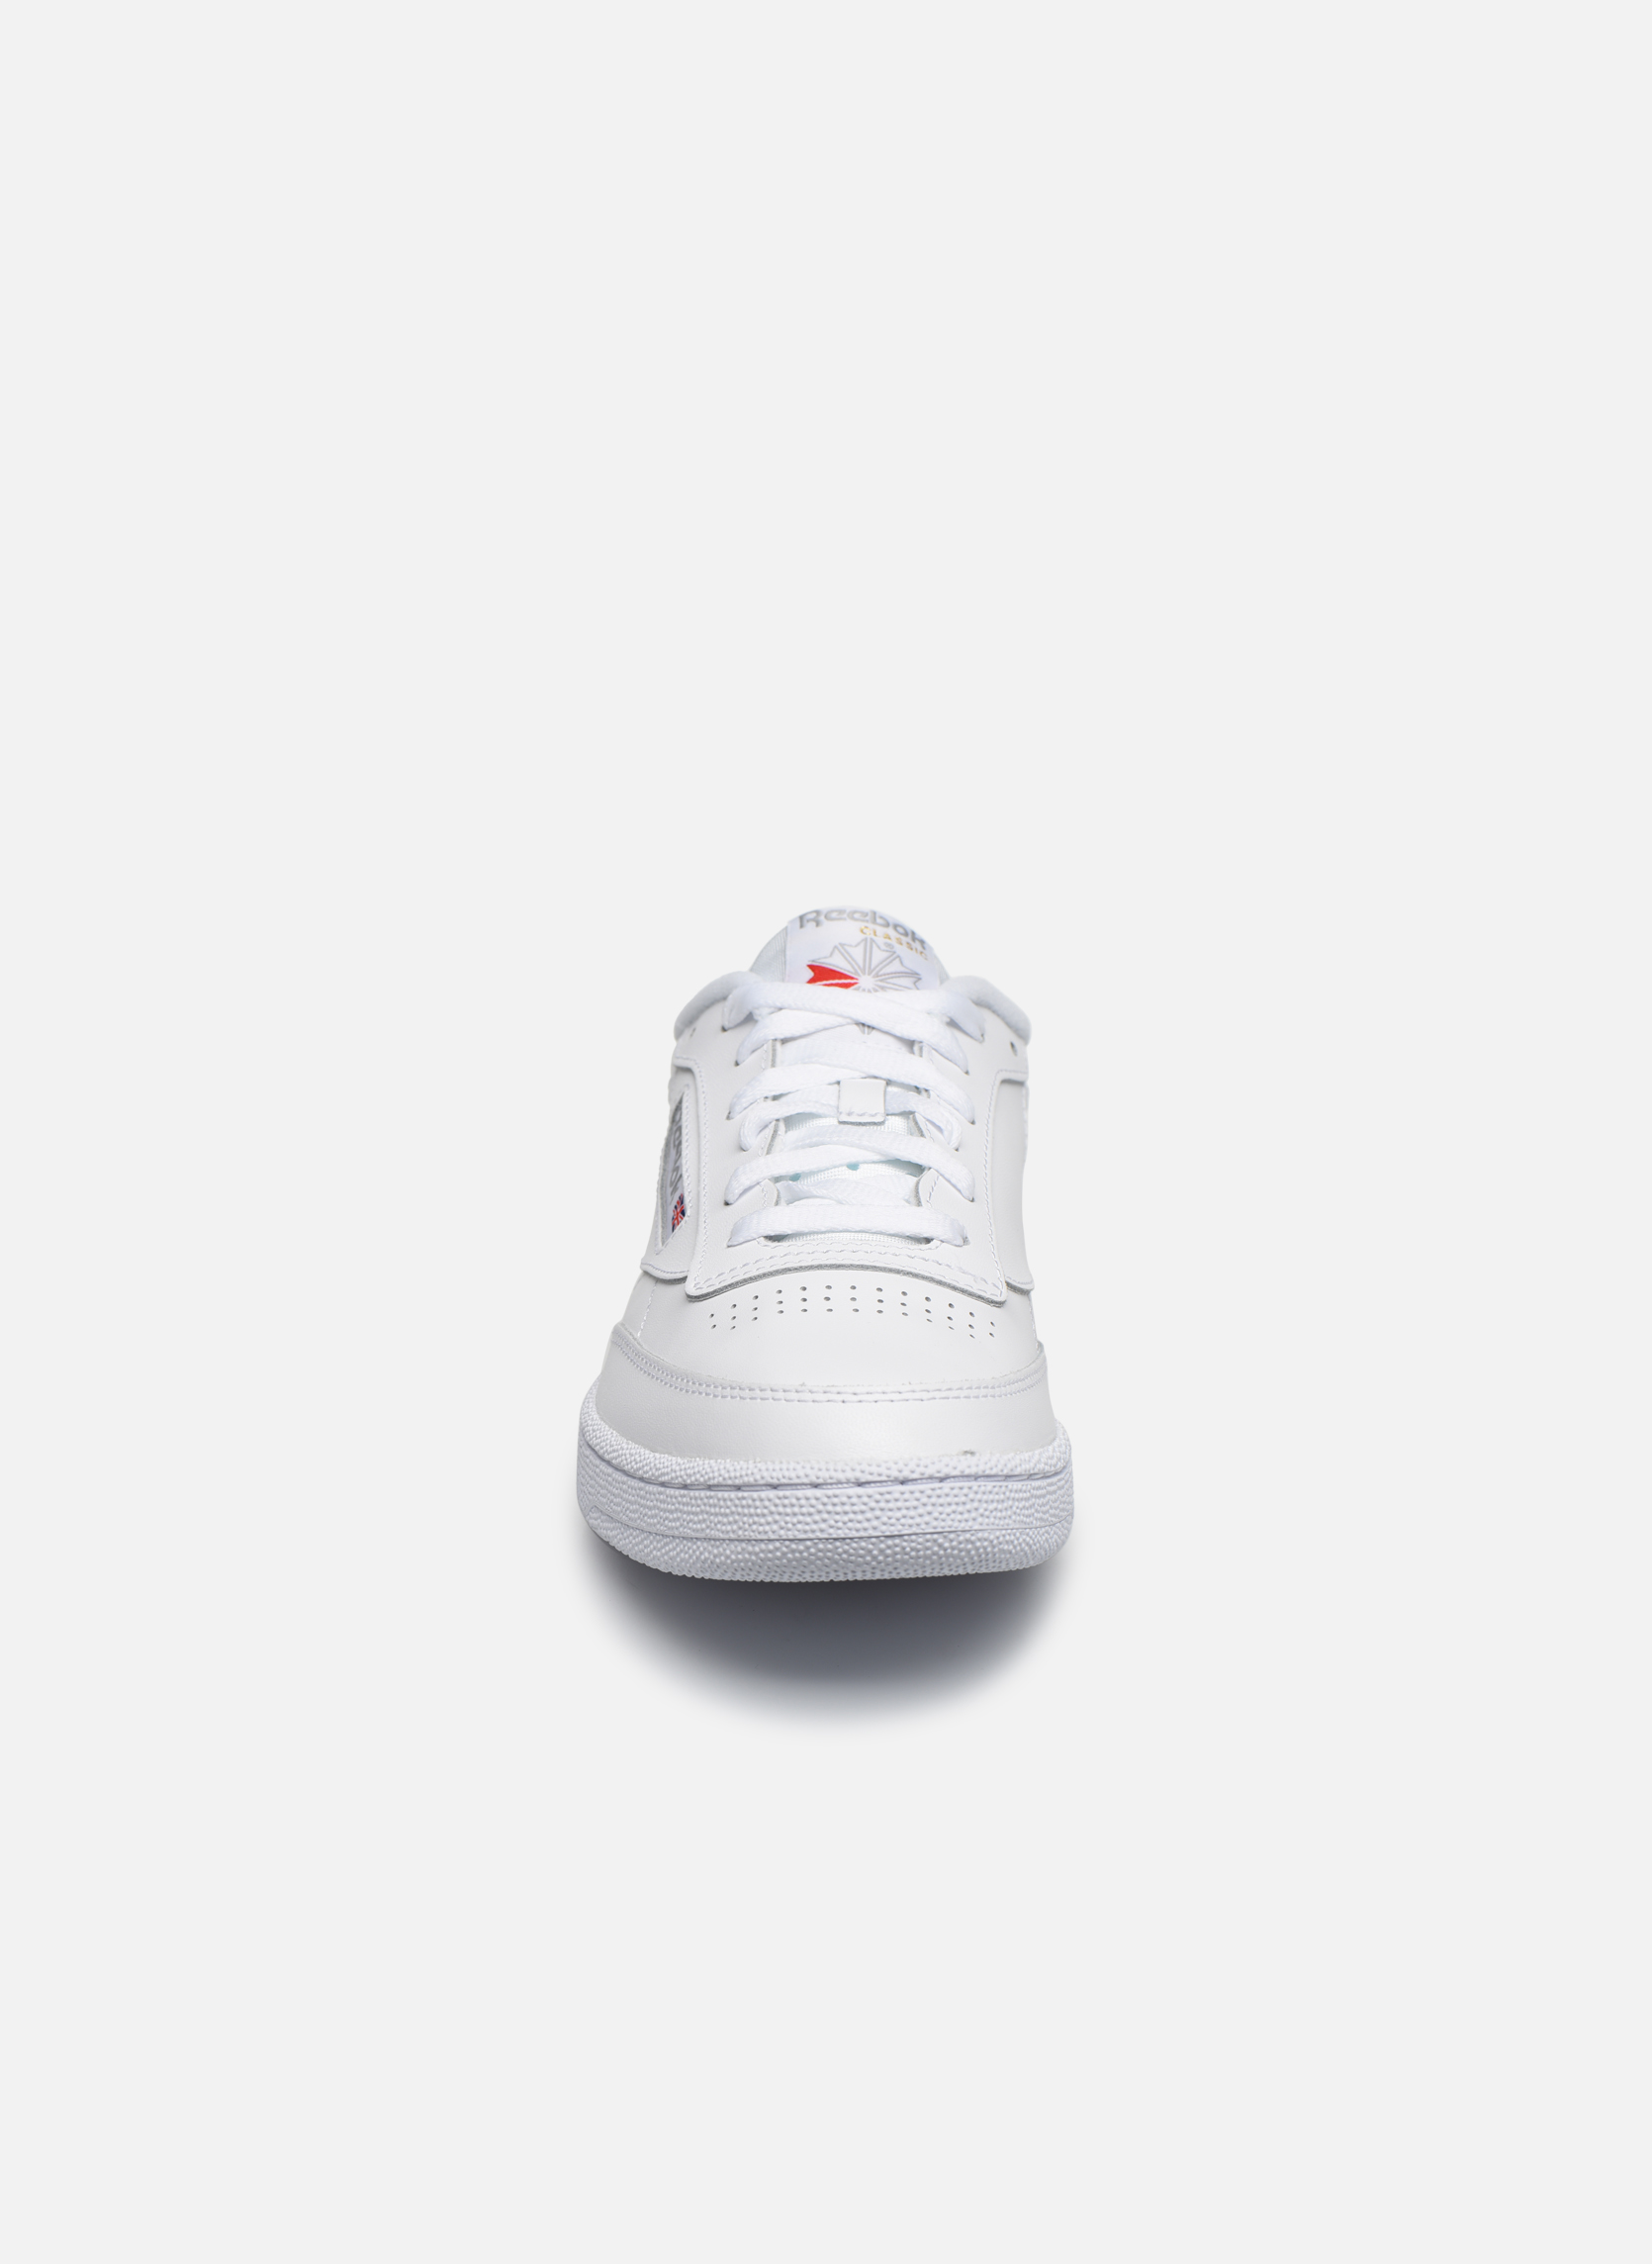 Club C 85 Int-White/Sheer Grey